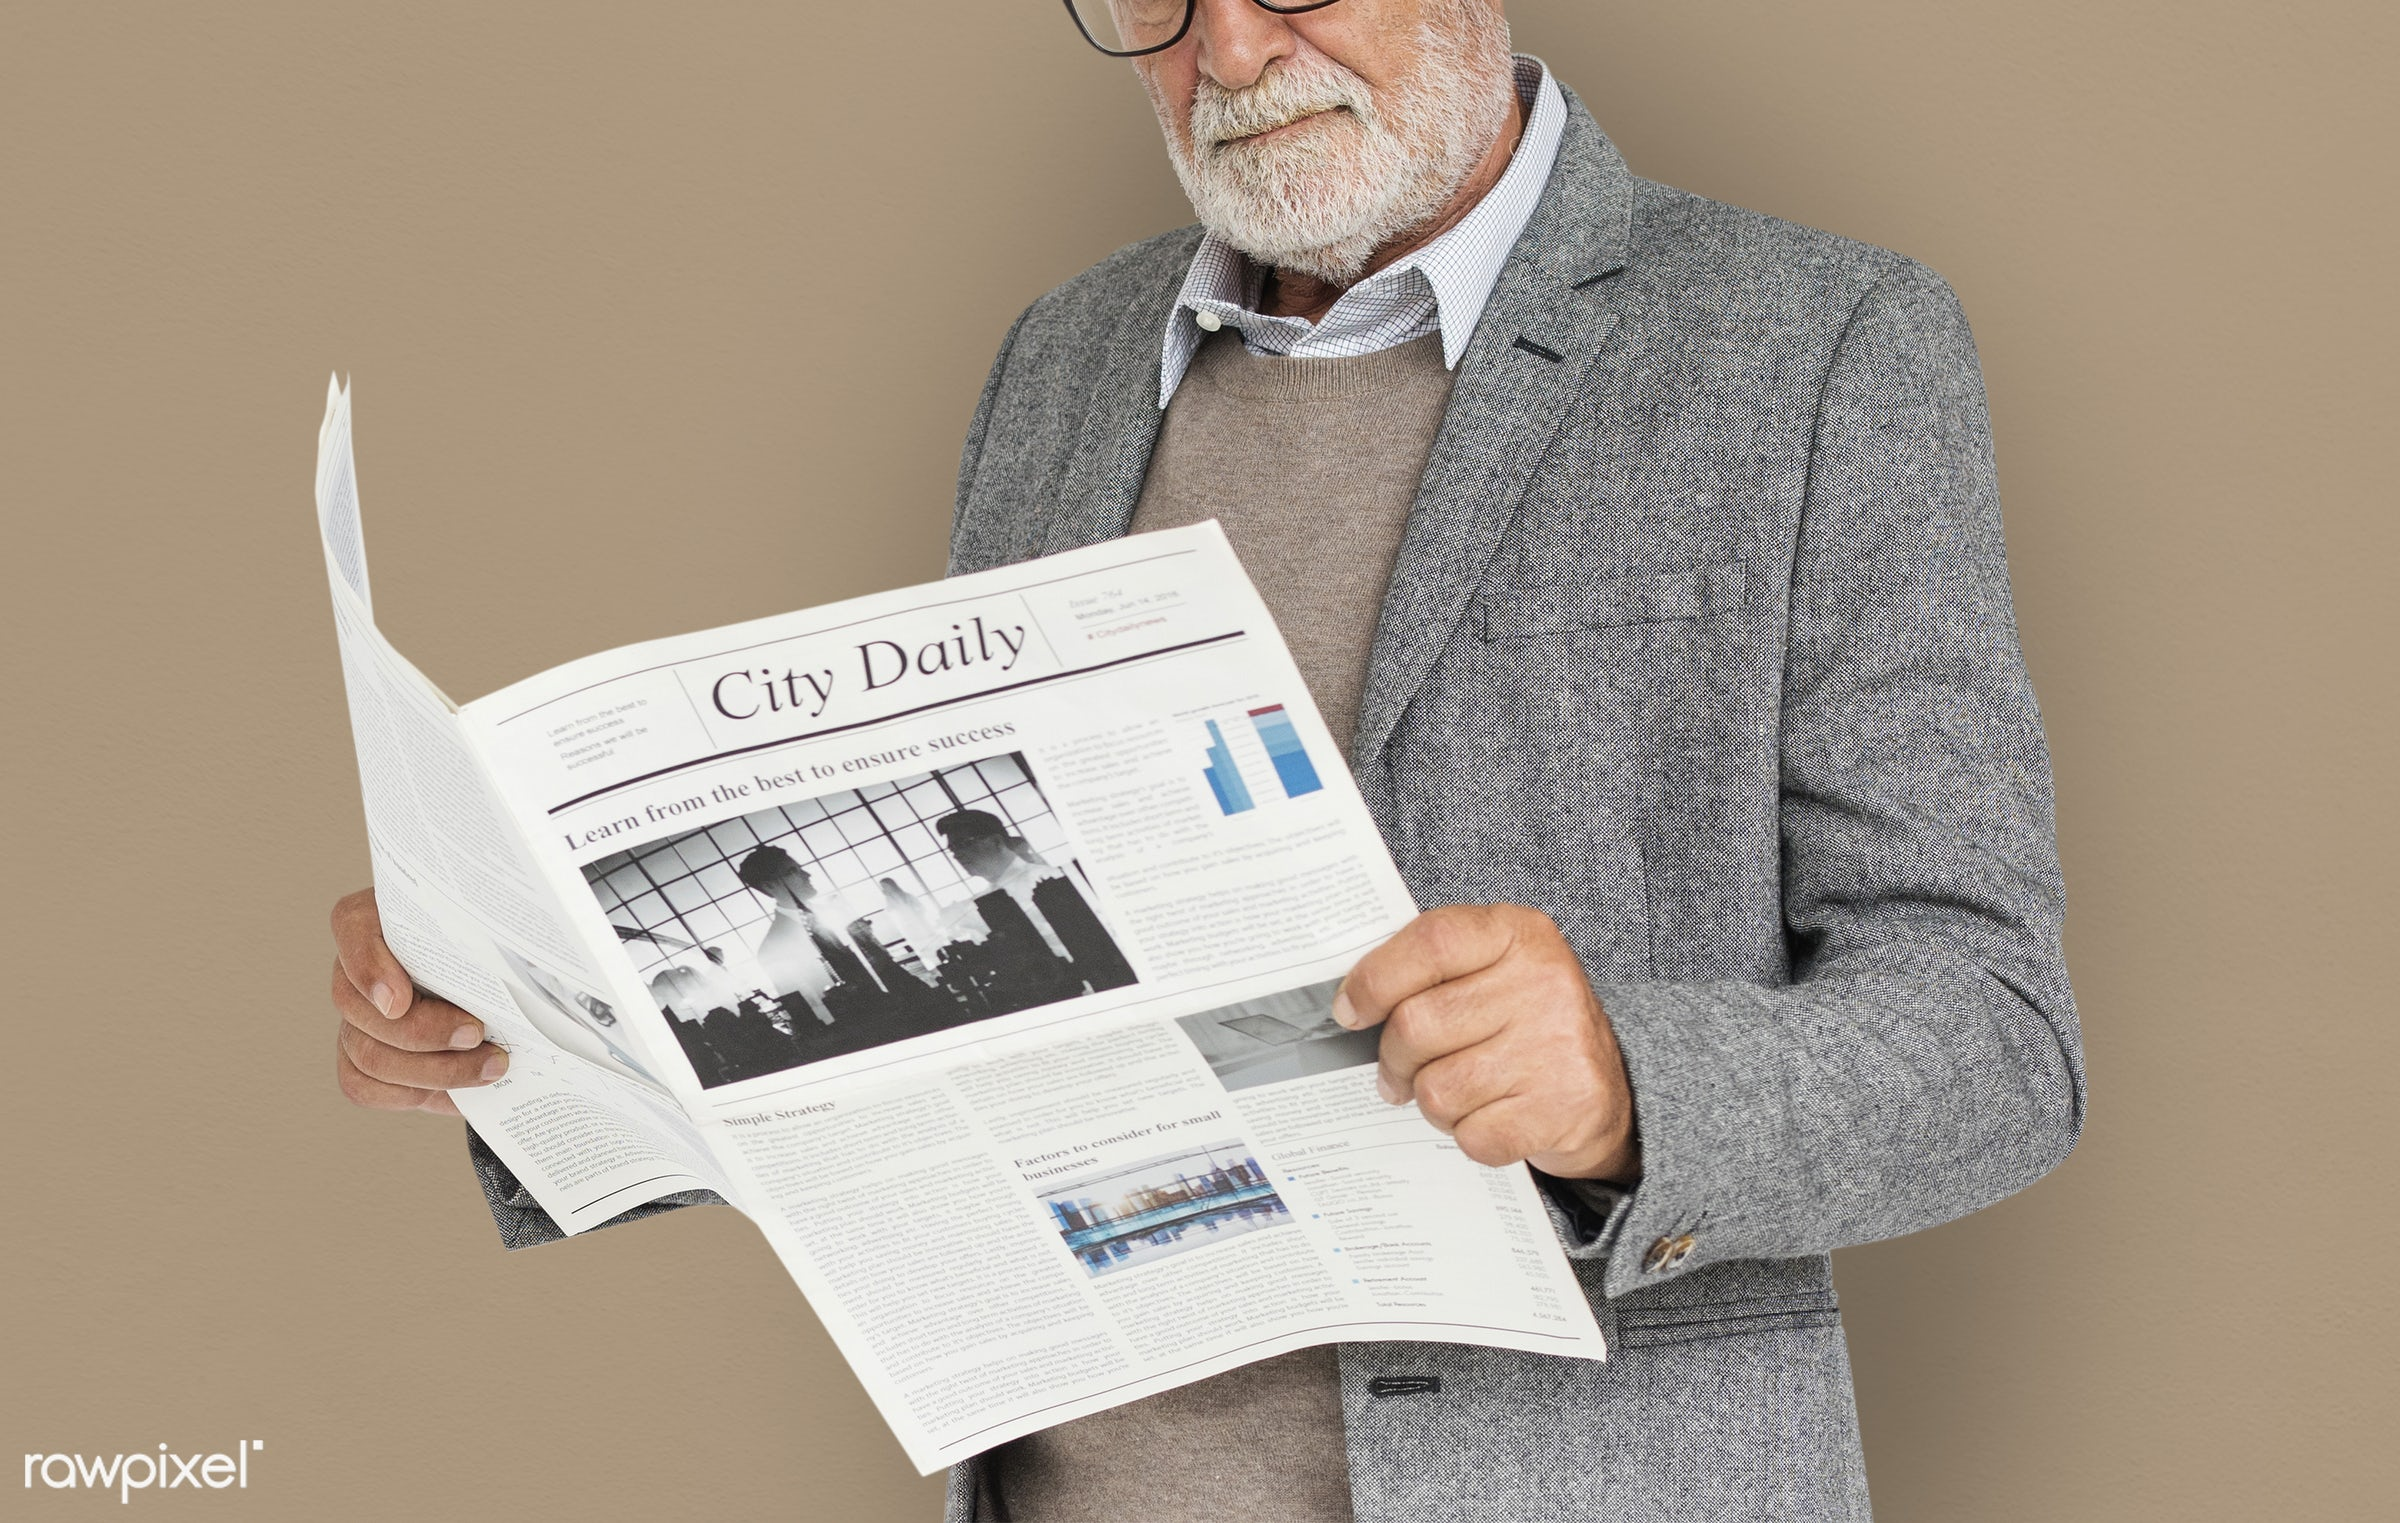 expression, studio, old, person, reading, business dressing, people, caucasian, positive, cheerful, isolated, business man,...